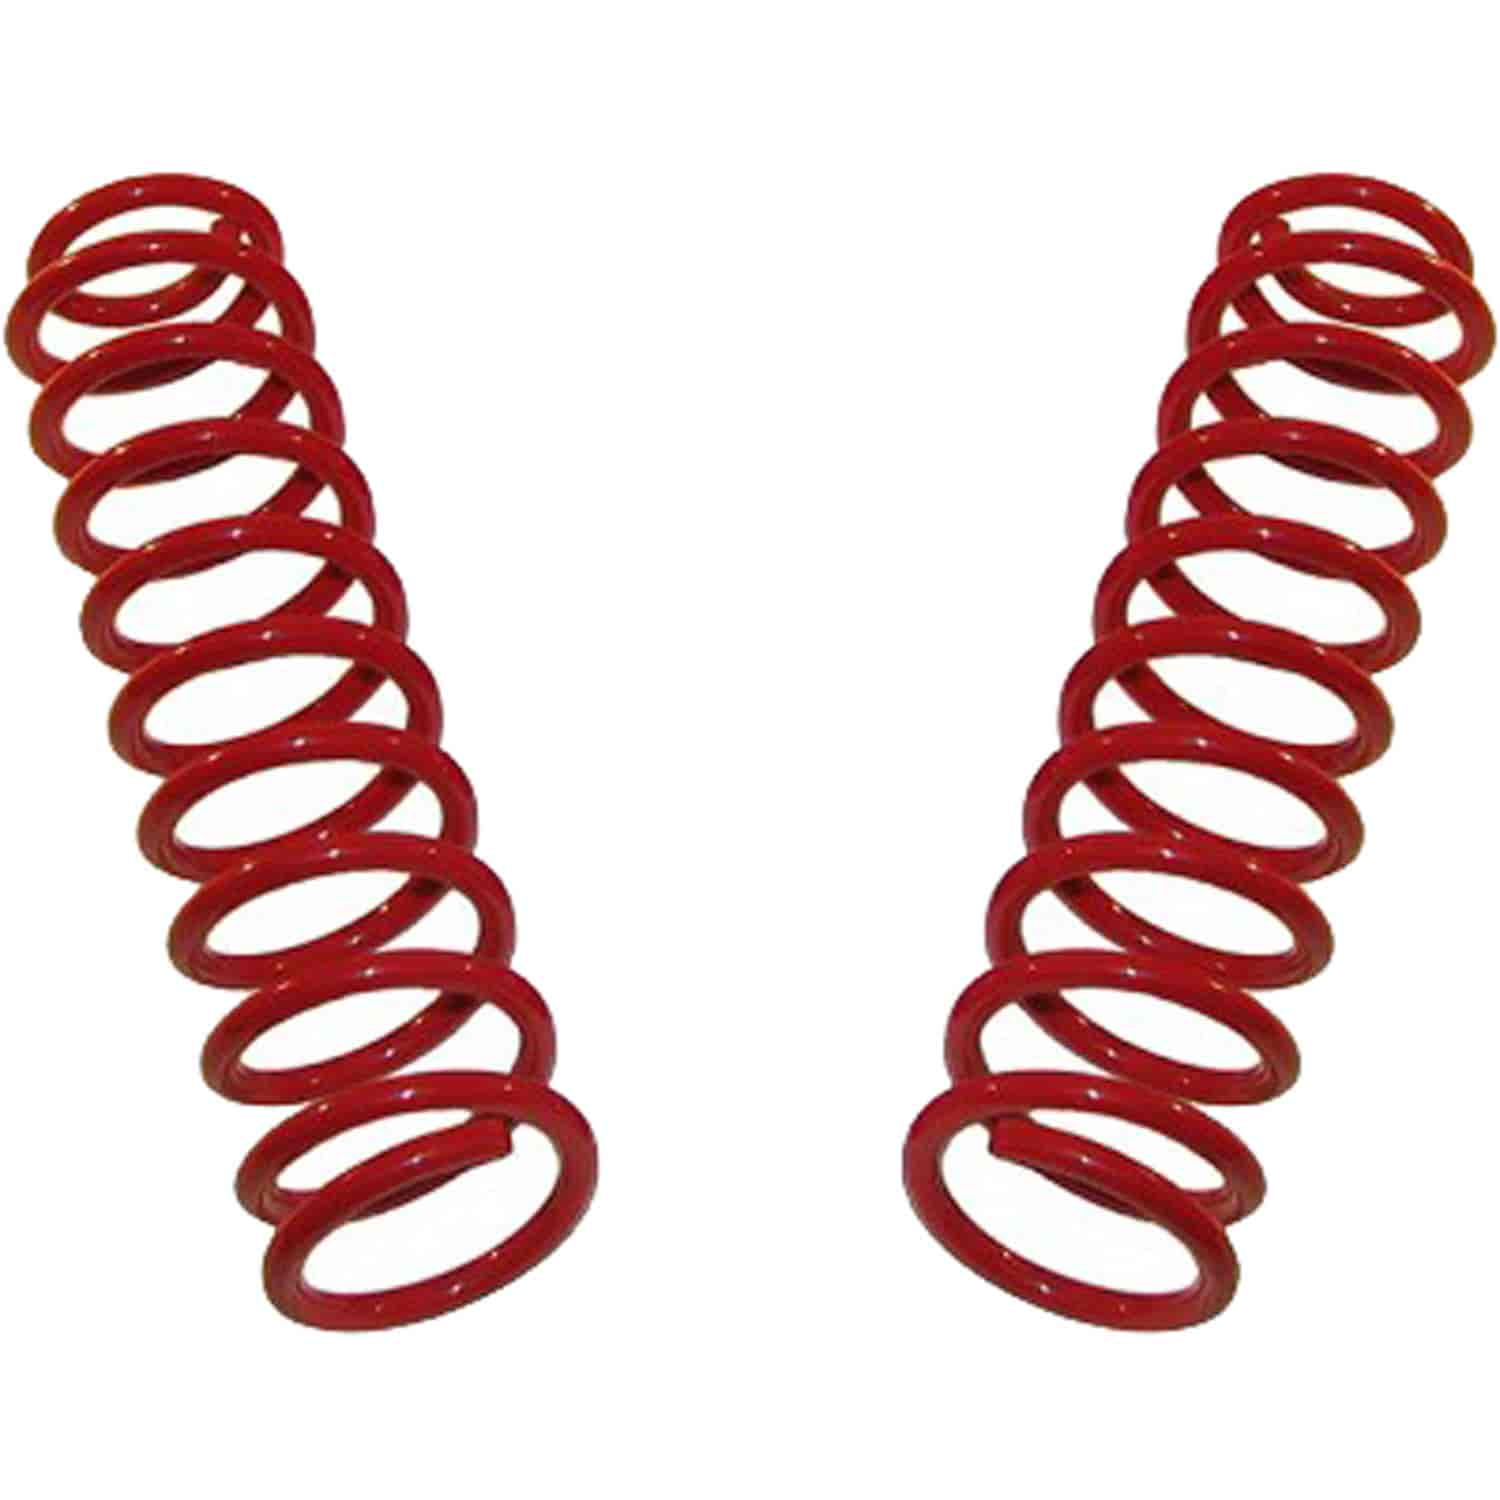 Rancho RS6219 - Rancho Performance Lift Coil Springs